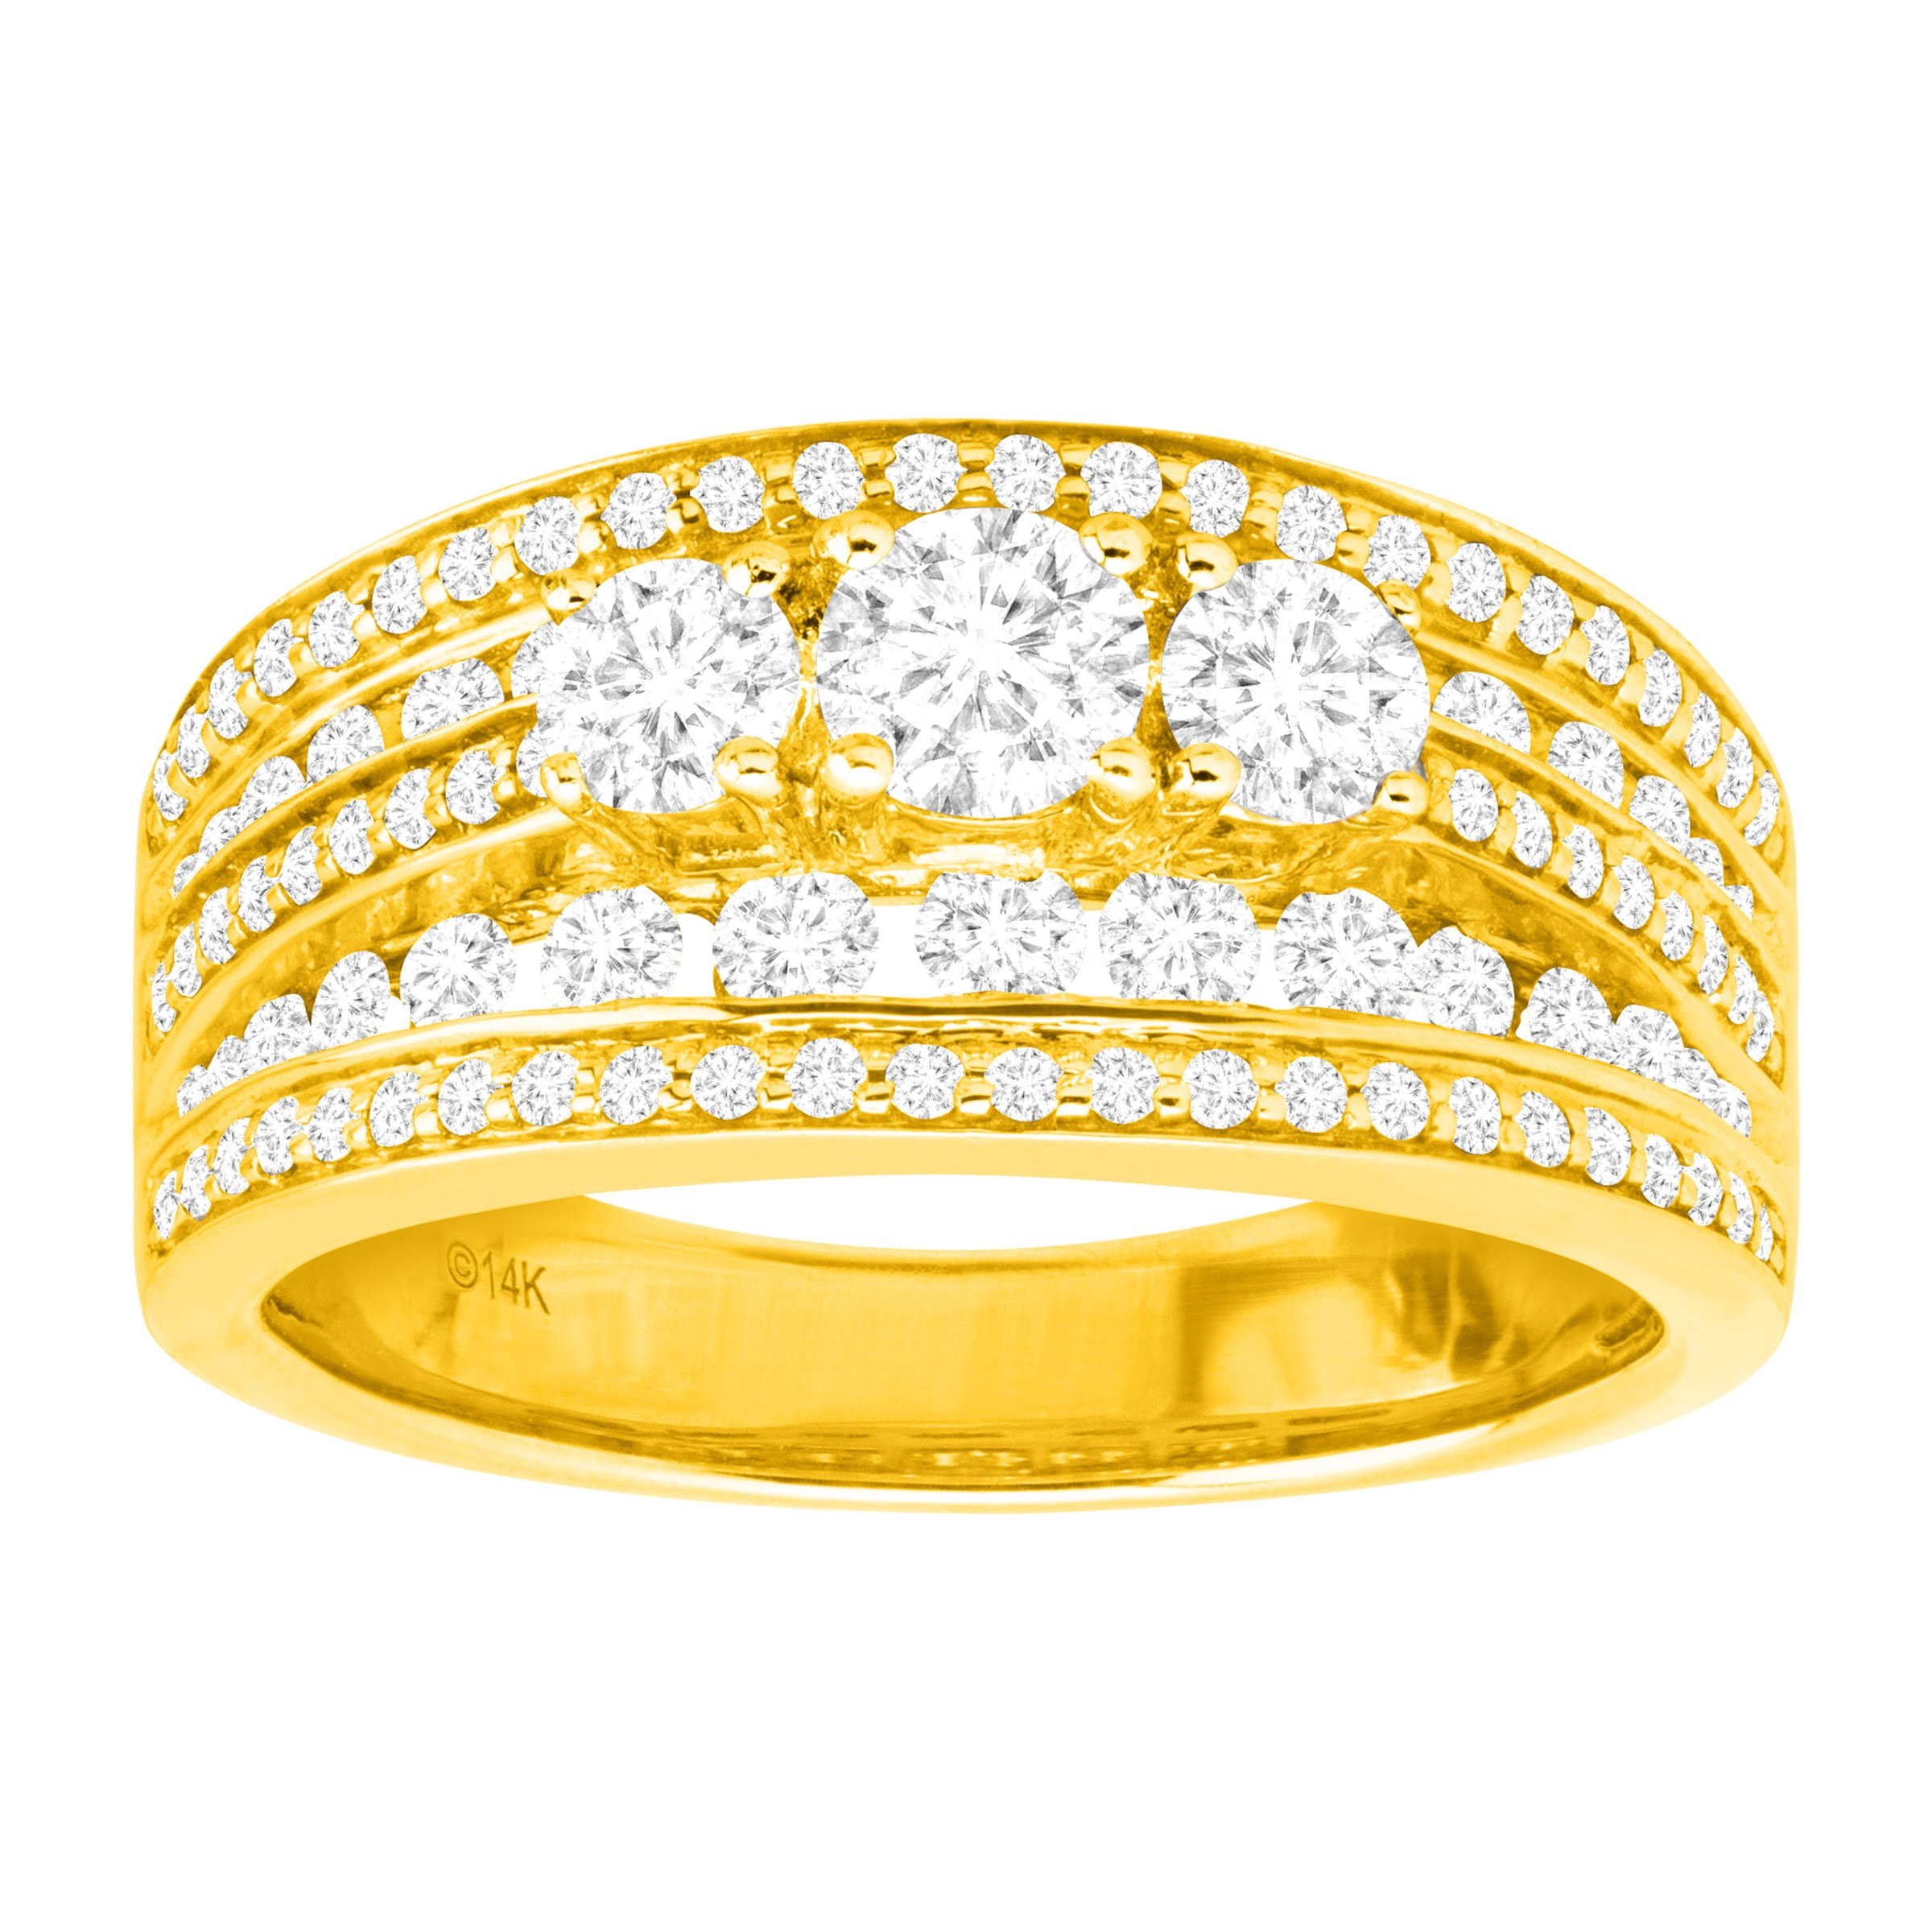 Details About Igi Certified 1 1/2 Ct Diamond Multi Band Anniversary Ring In  14K Gold Within Latest Certified Diamond Anniversary Bands In Rose Gold (Gallery 10 of 25)